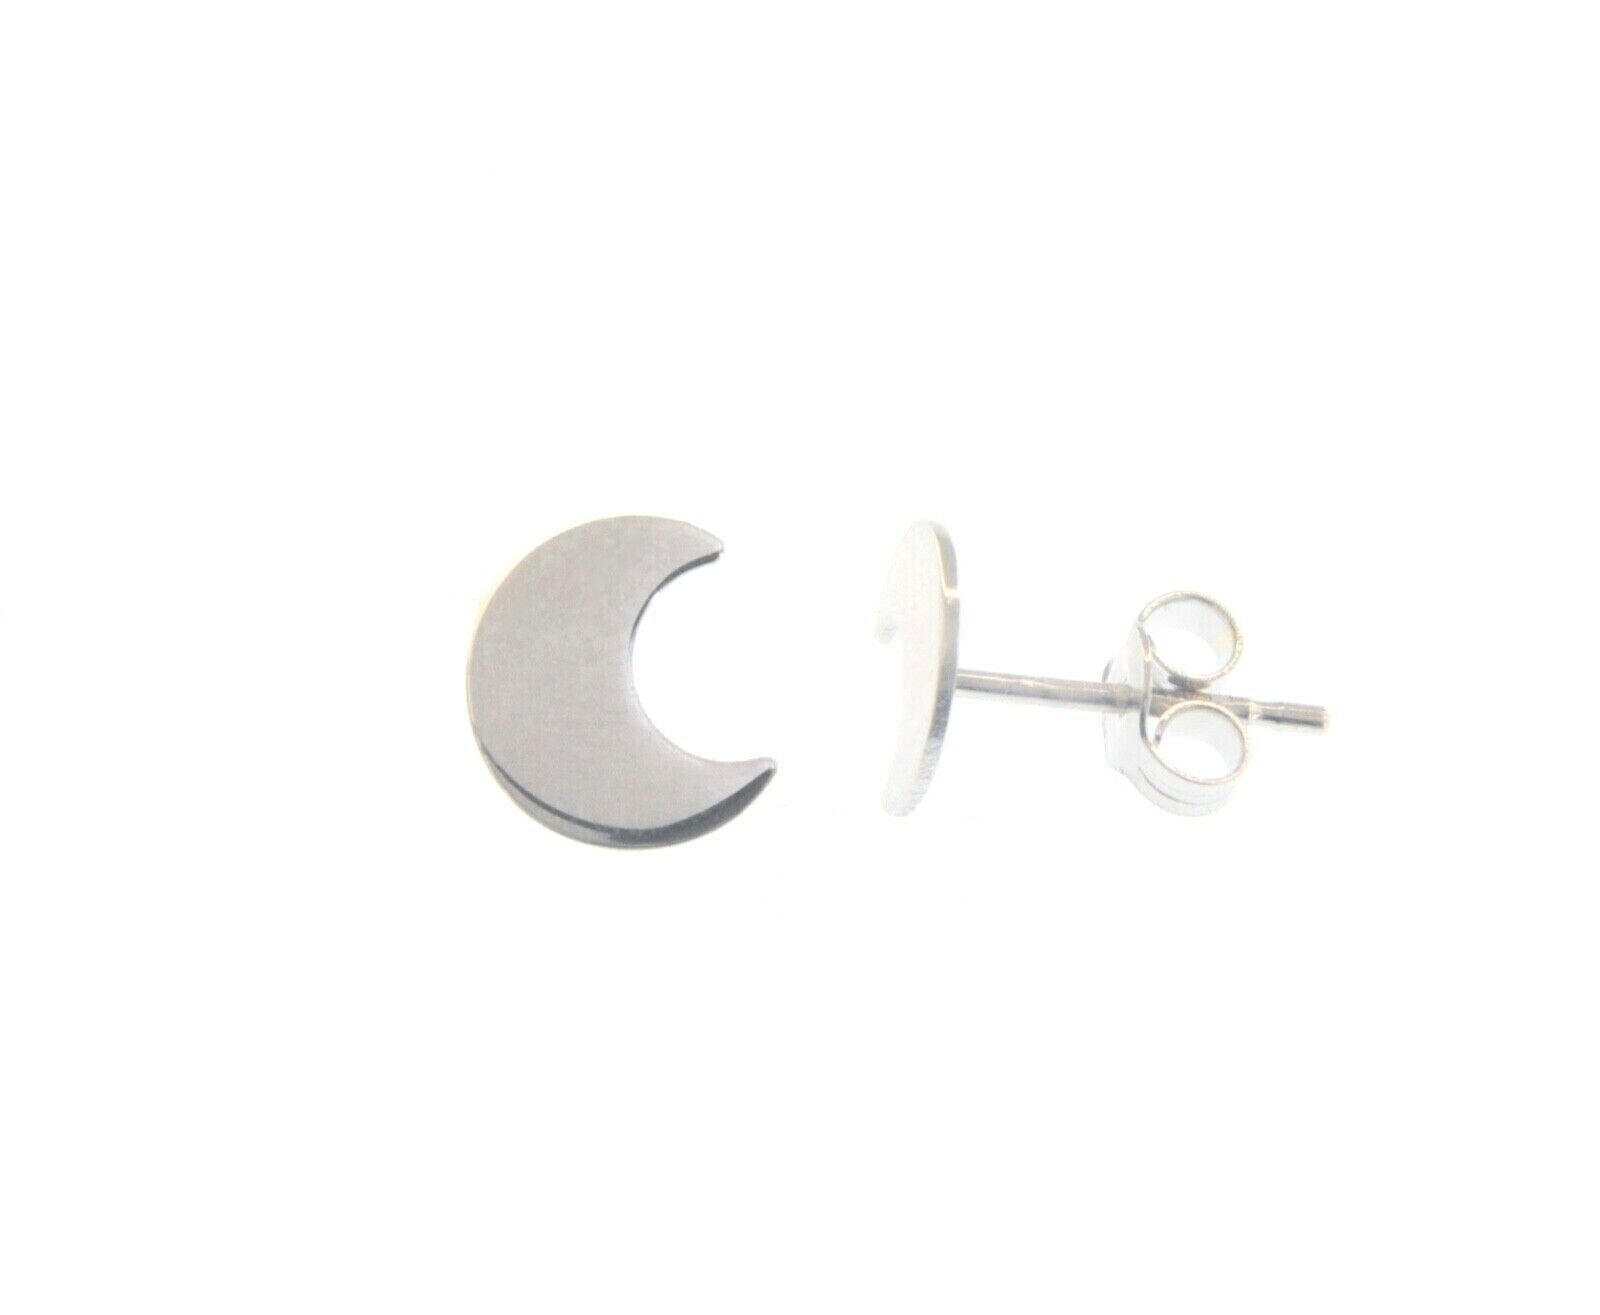 18K WHITE GOLD EARRINGS SMALL FLAT MOON, SHINY, SMOOTH, 5mm, MADE IN ITALY